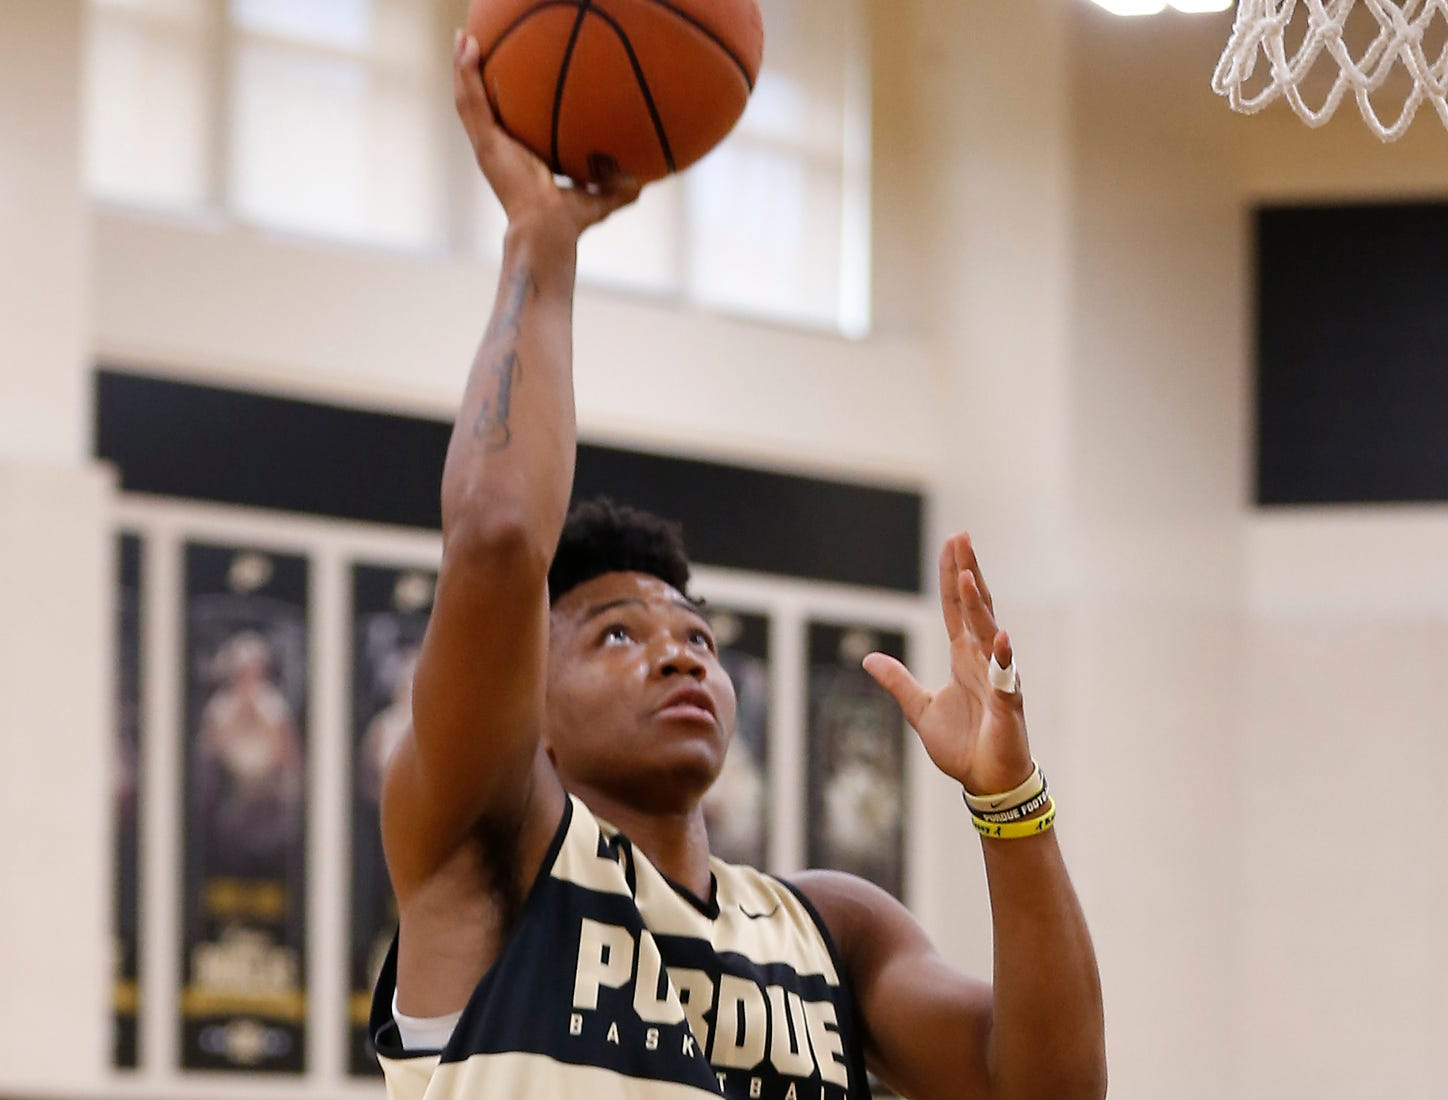 Nojel Eastern with a layup during the first official practice of the season for Purdue men's basketball Tuesday, September 25, 2018, at Cardinal Court in Mackey Arena.